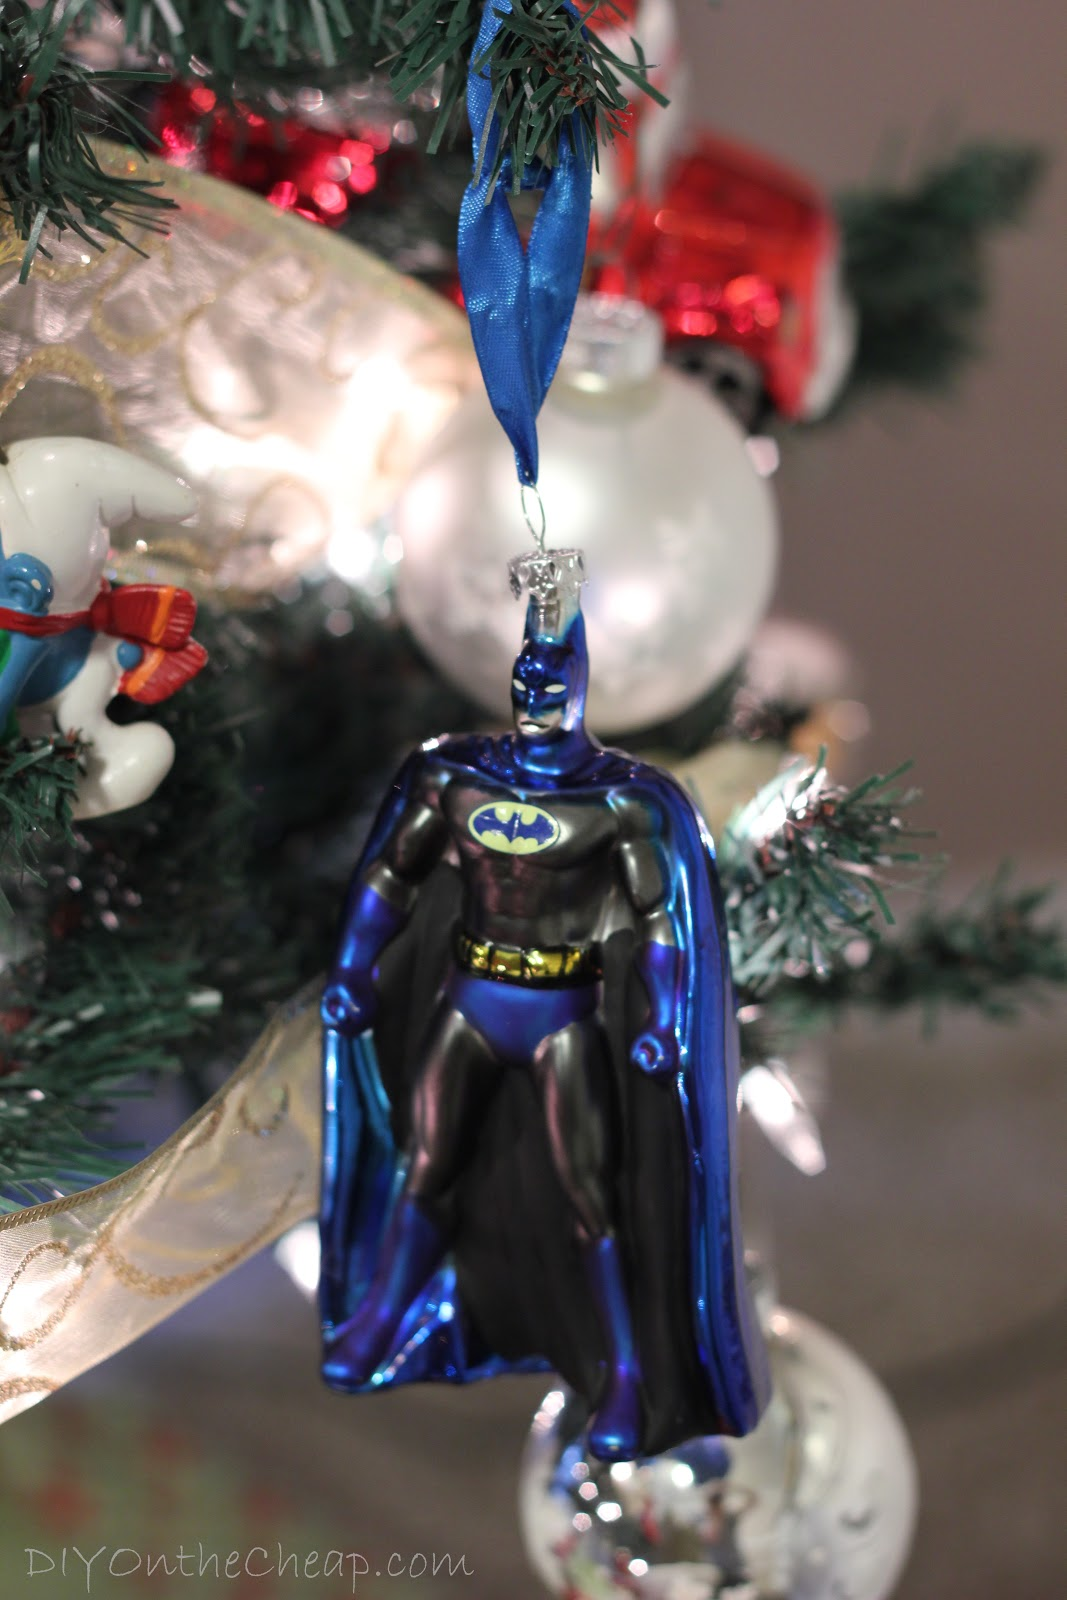 Batman christmas tree ornaments - Batman Ornament It S Funny When We Were Decorating The Tree It Was A Little Bit Of A Disaster The Top Strands Of Lights On Our Pre Lit Tree Decided To